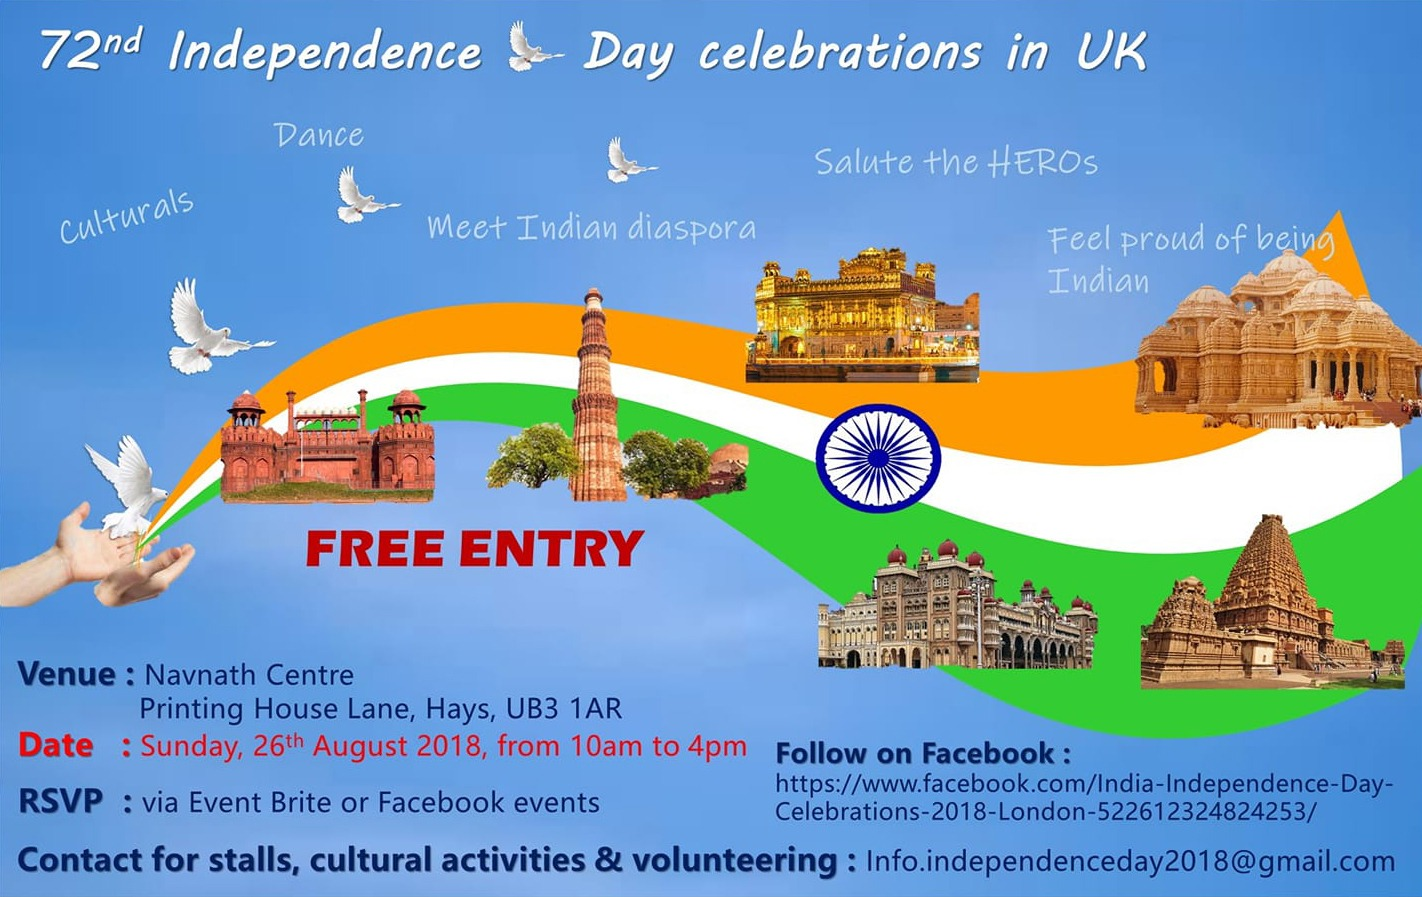 72nd Indian Independence Day Celebrations In Uk Free Entry